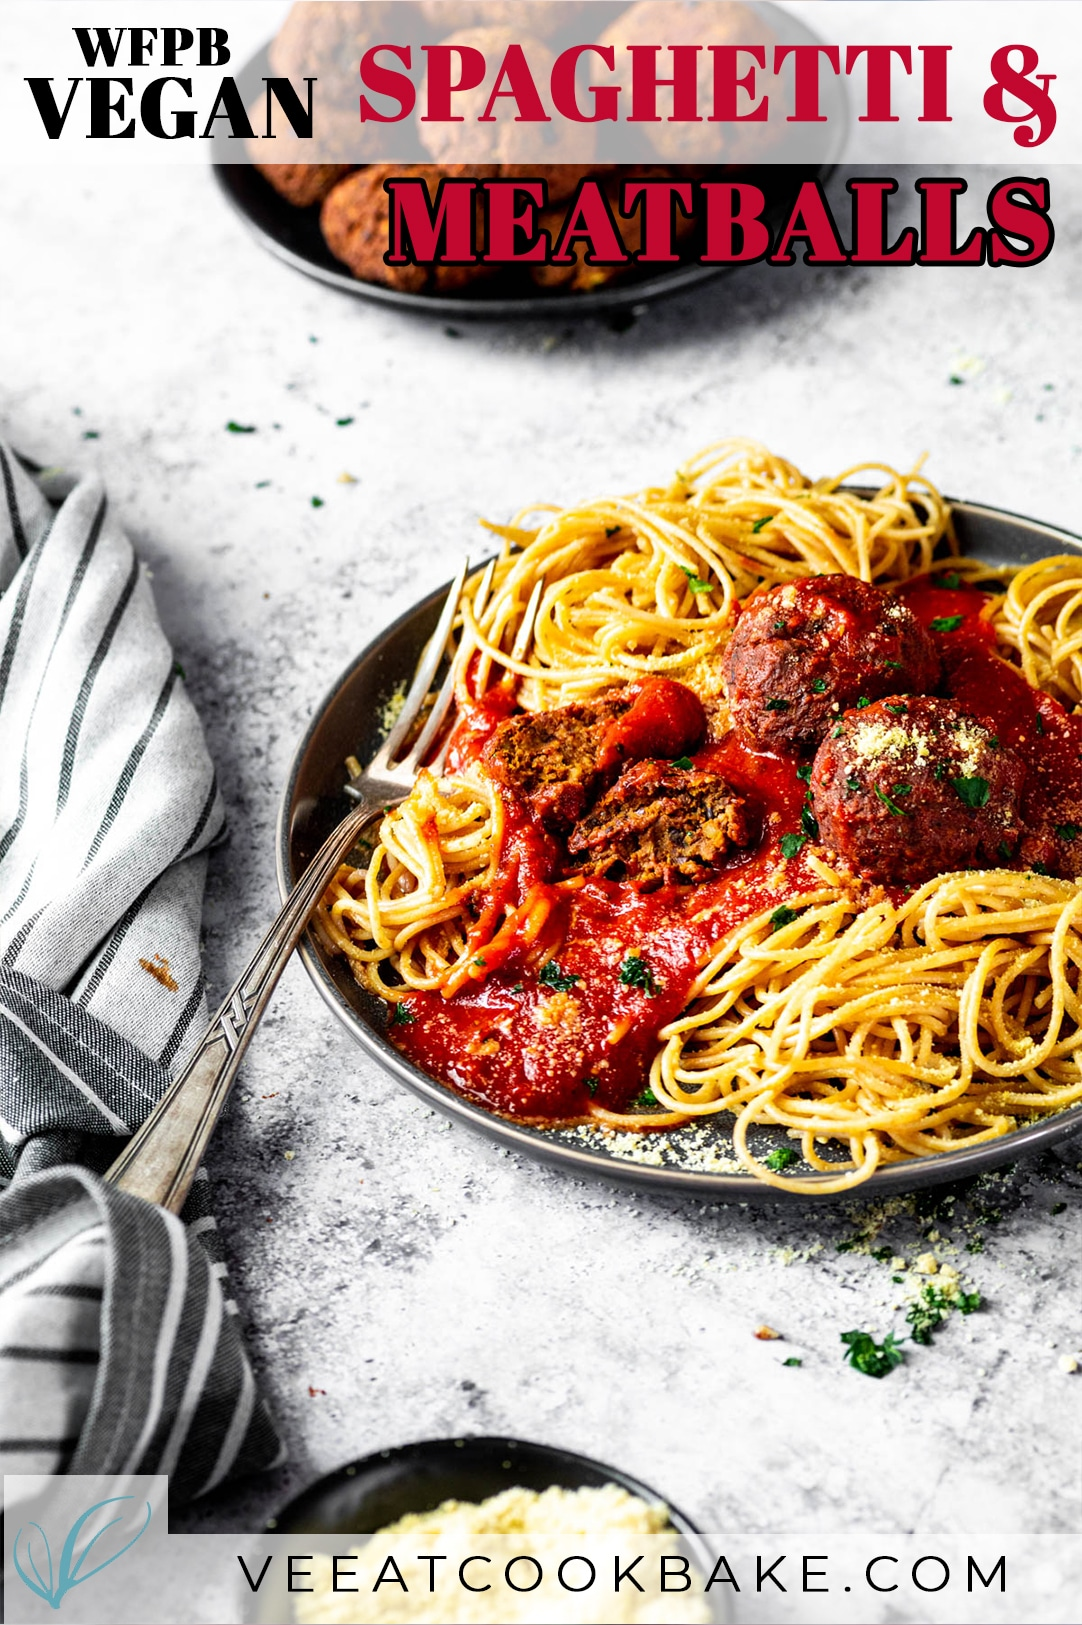 Vegan Meatballs and Spaghettis served on a plate with text layover